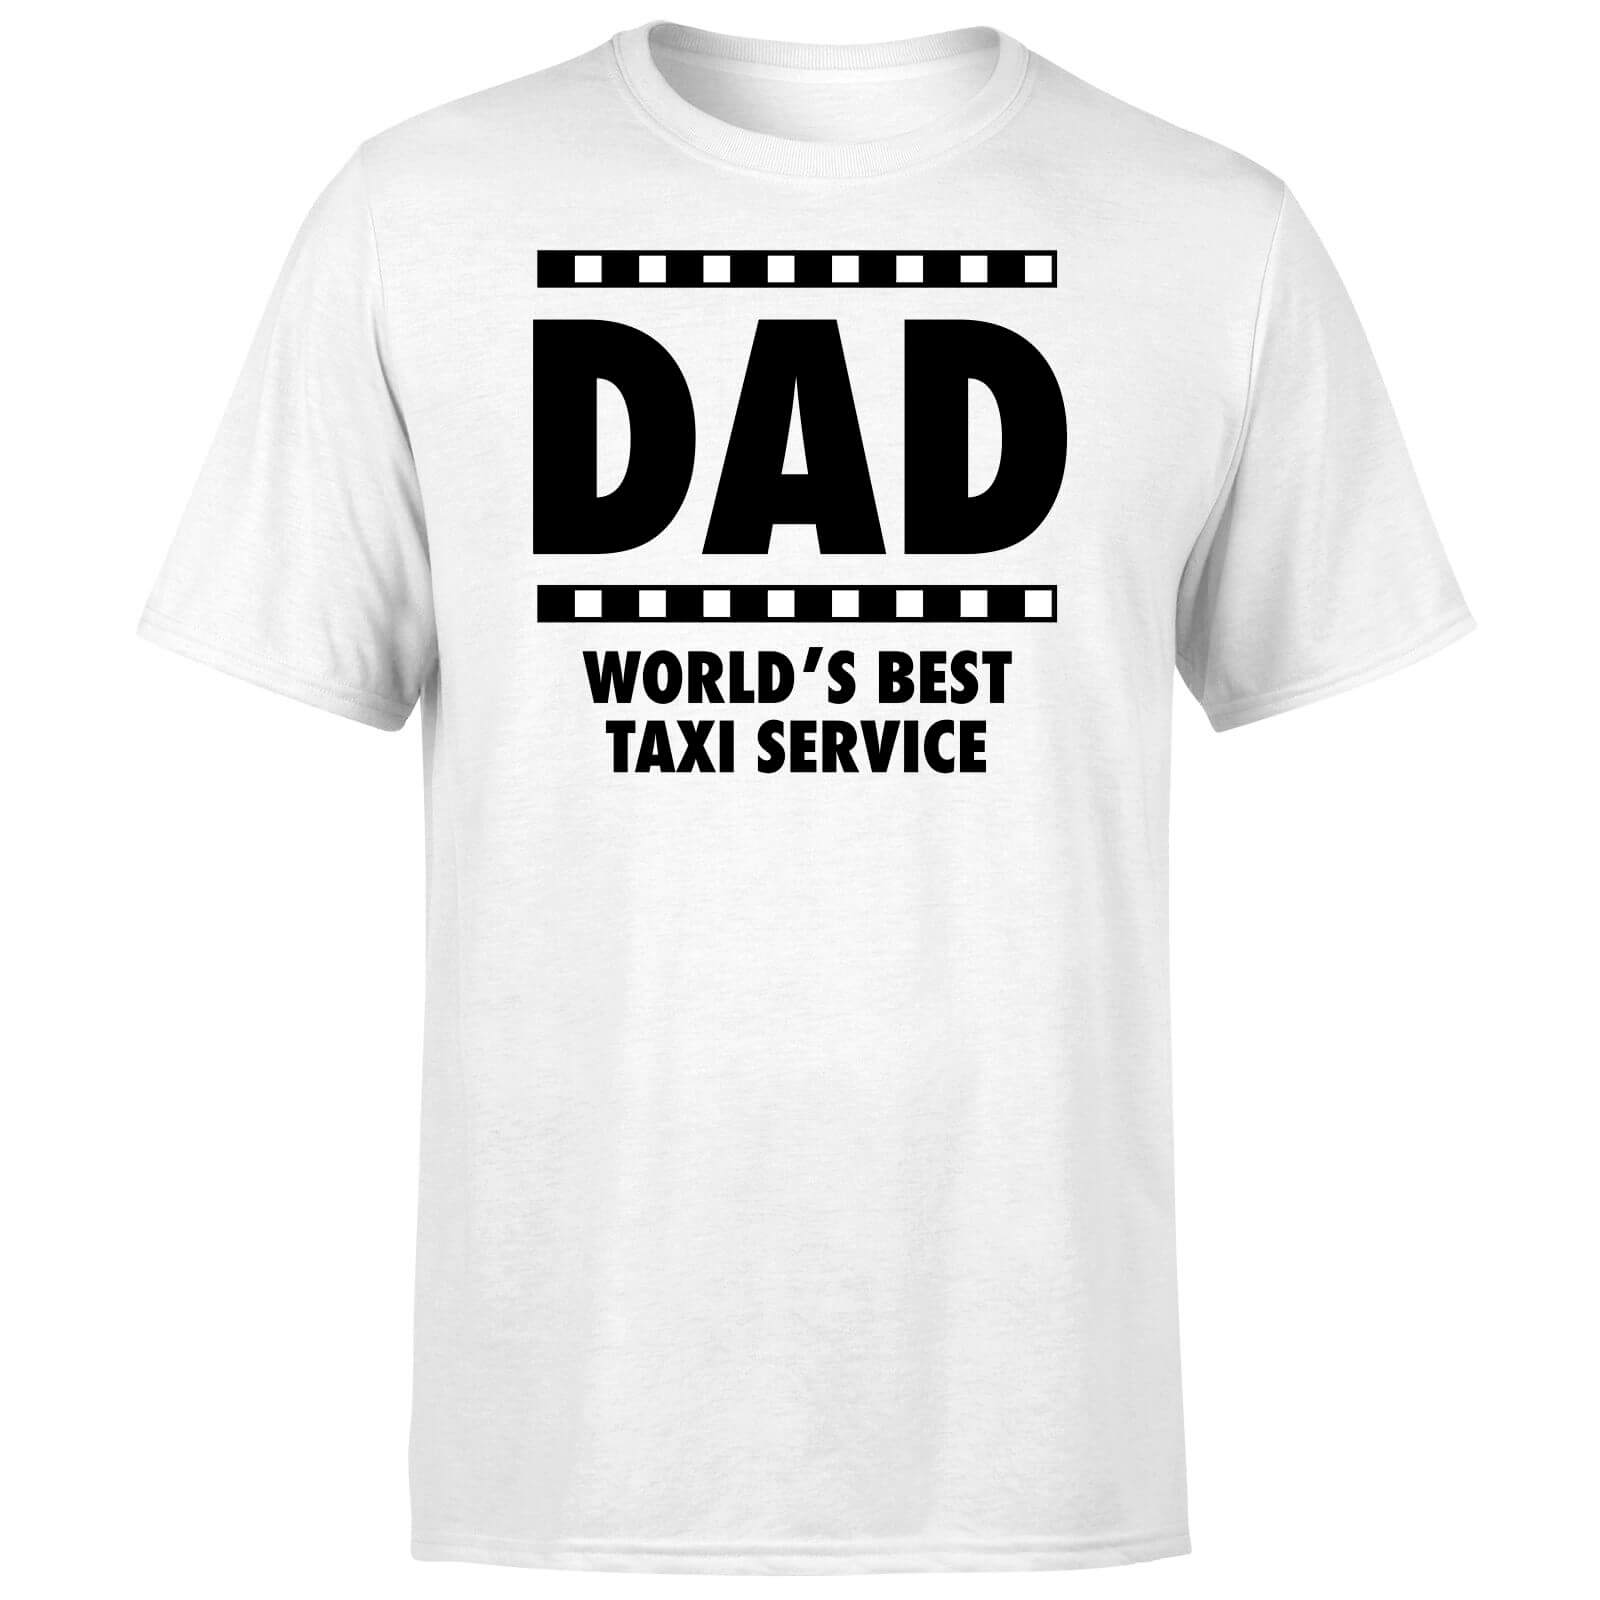 Dad Taxi Service T-Shirt - White